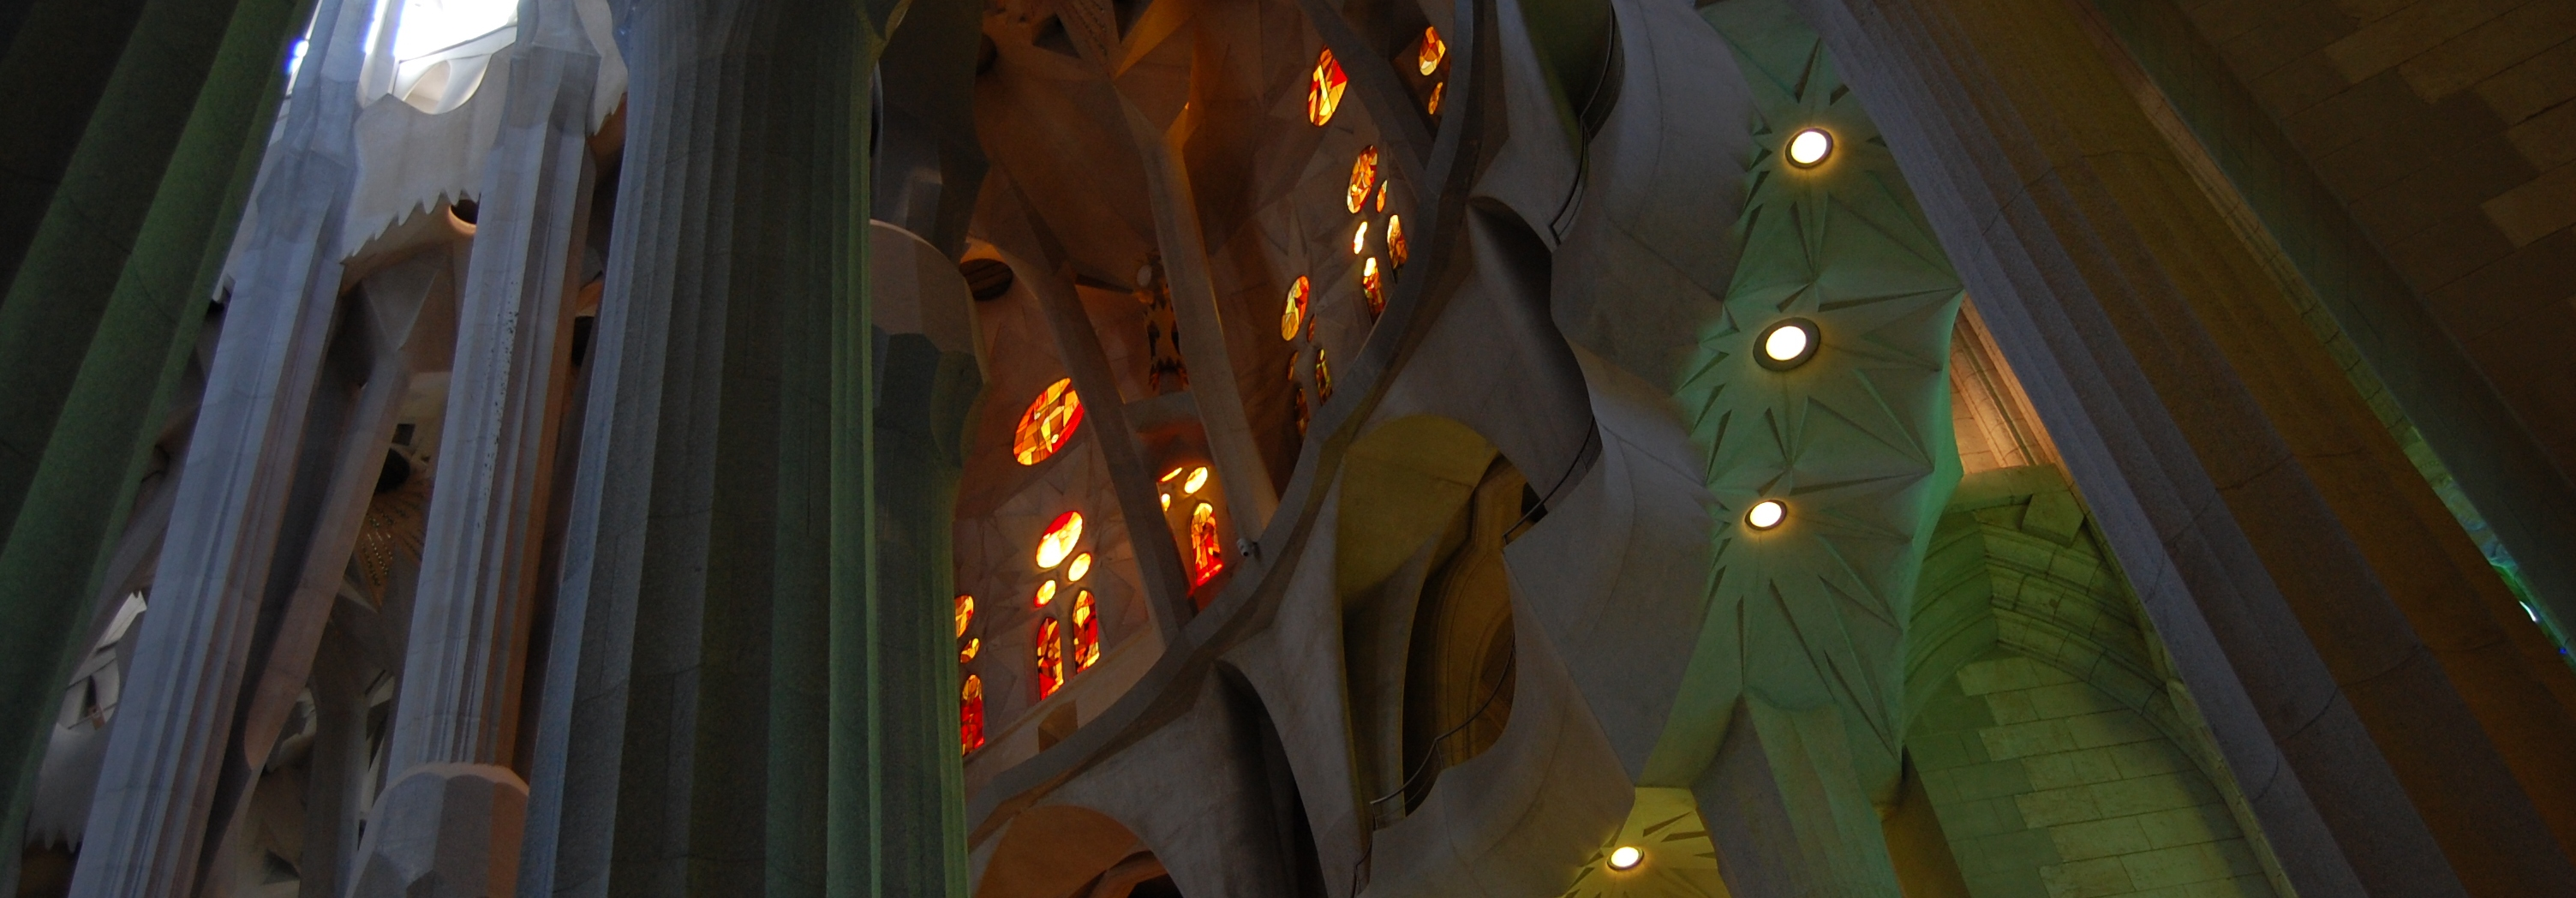 Geometry Study of the Columns of the Sagrada Familia